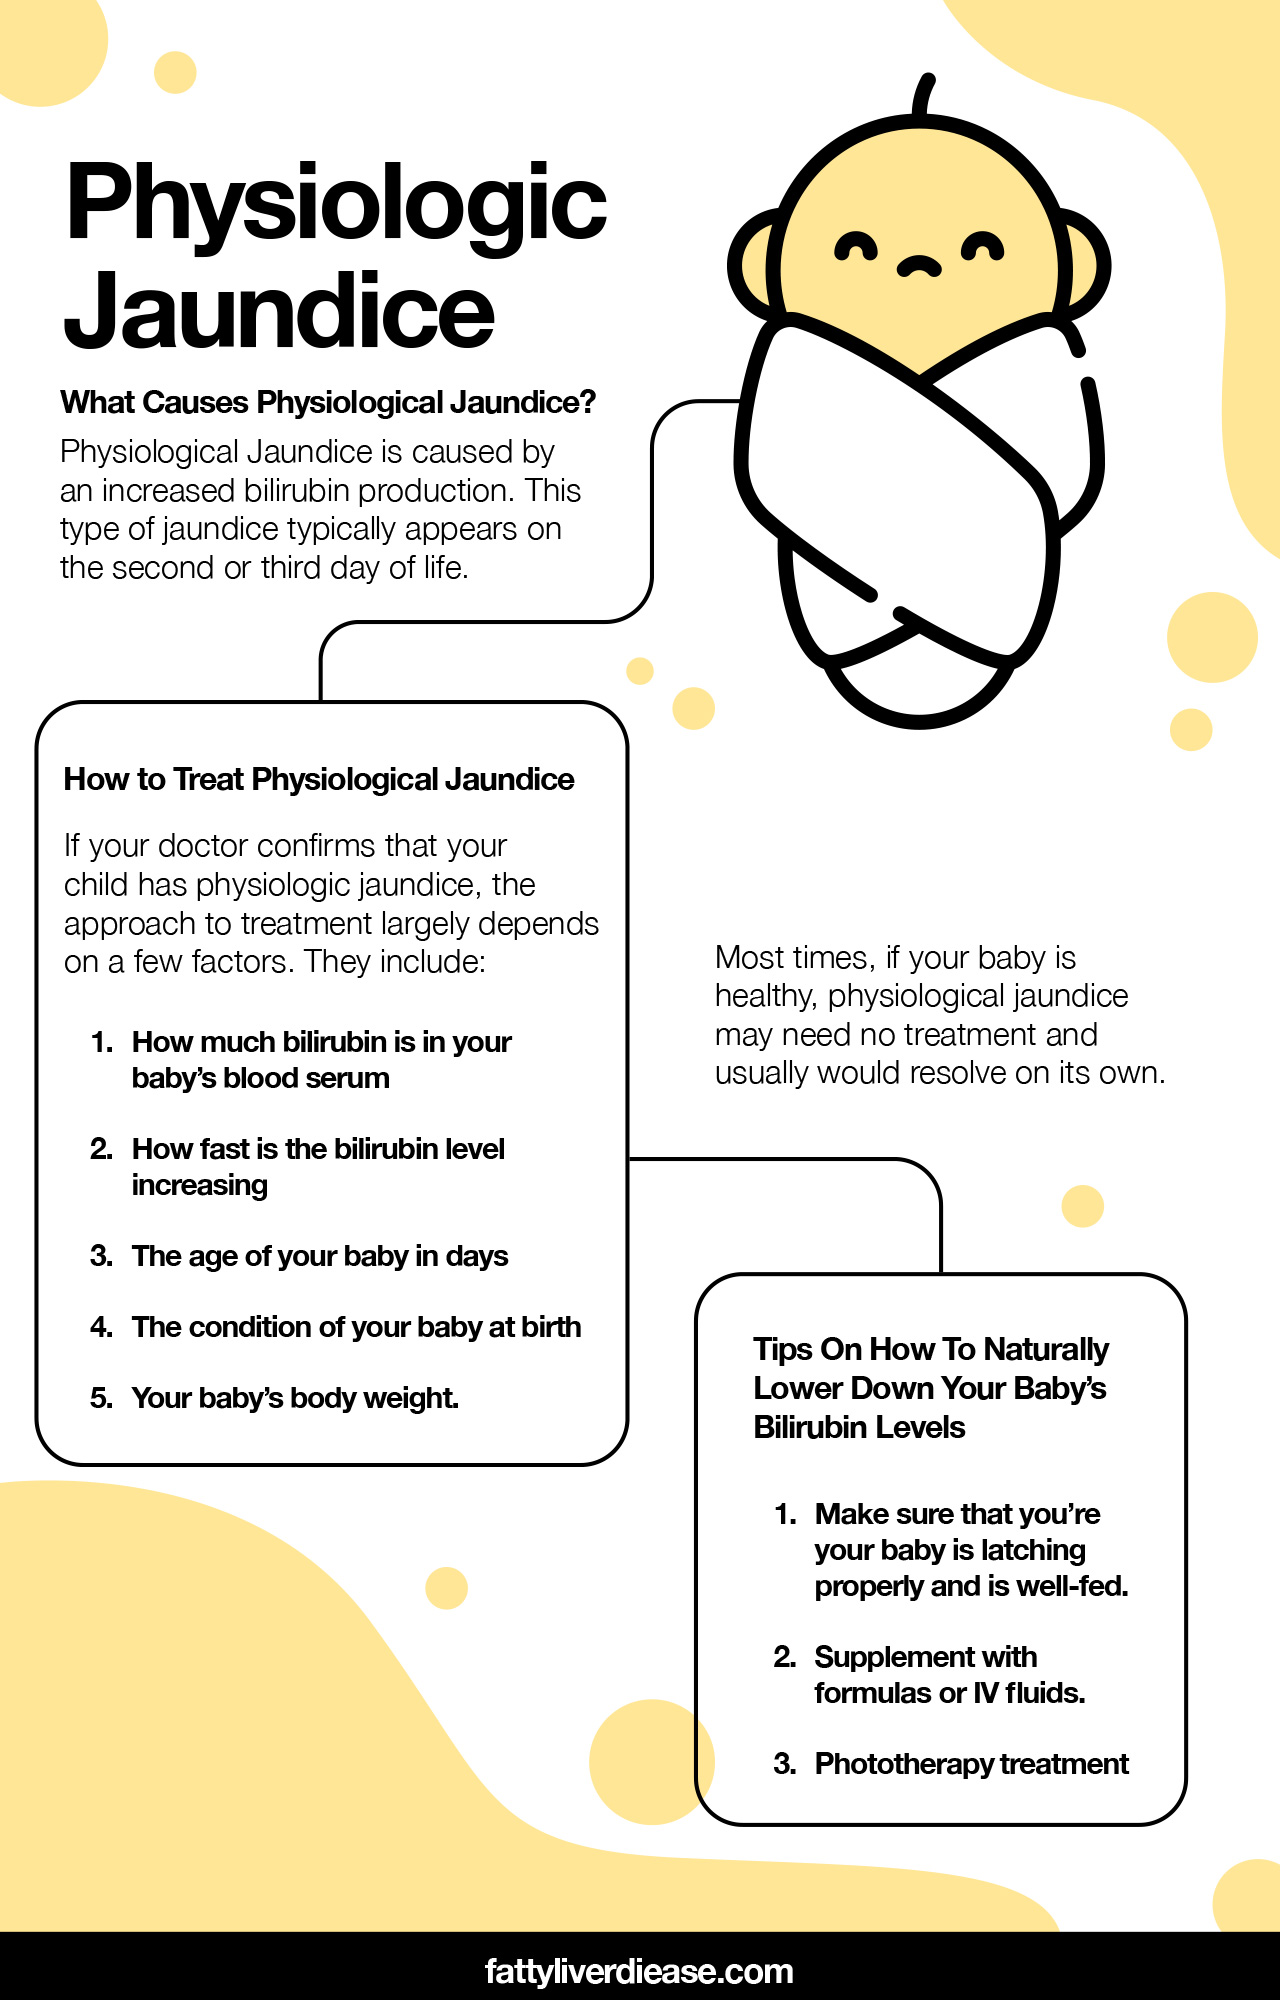 What is Physiologic Jaundice?